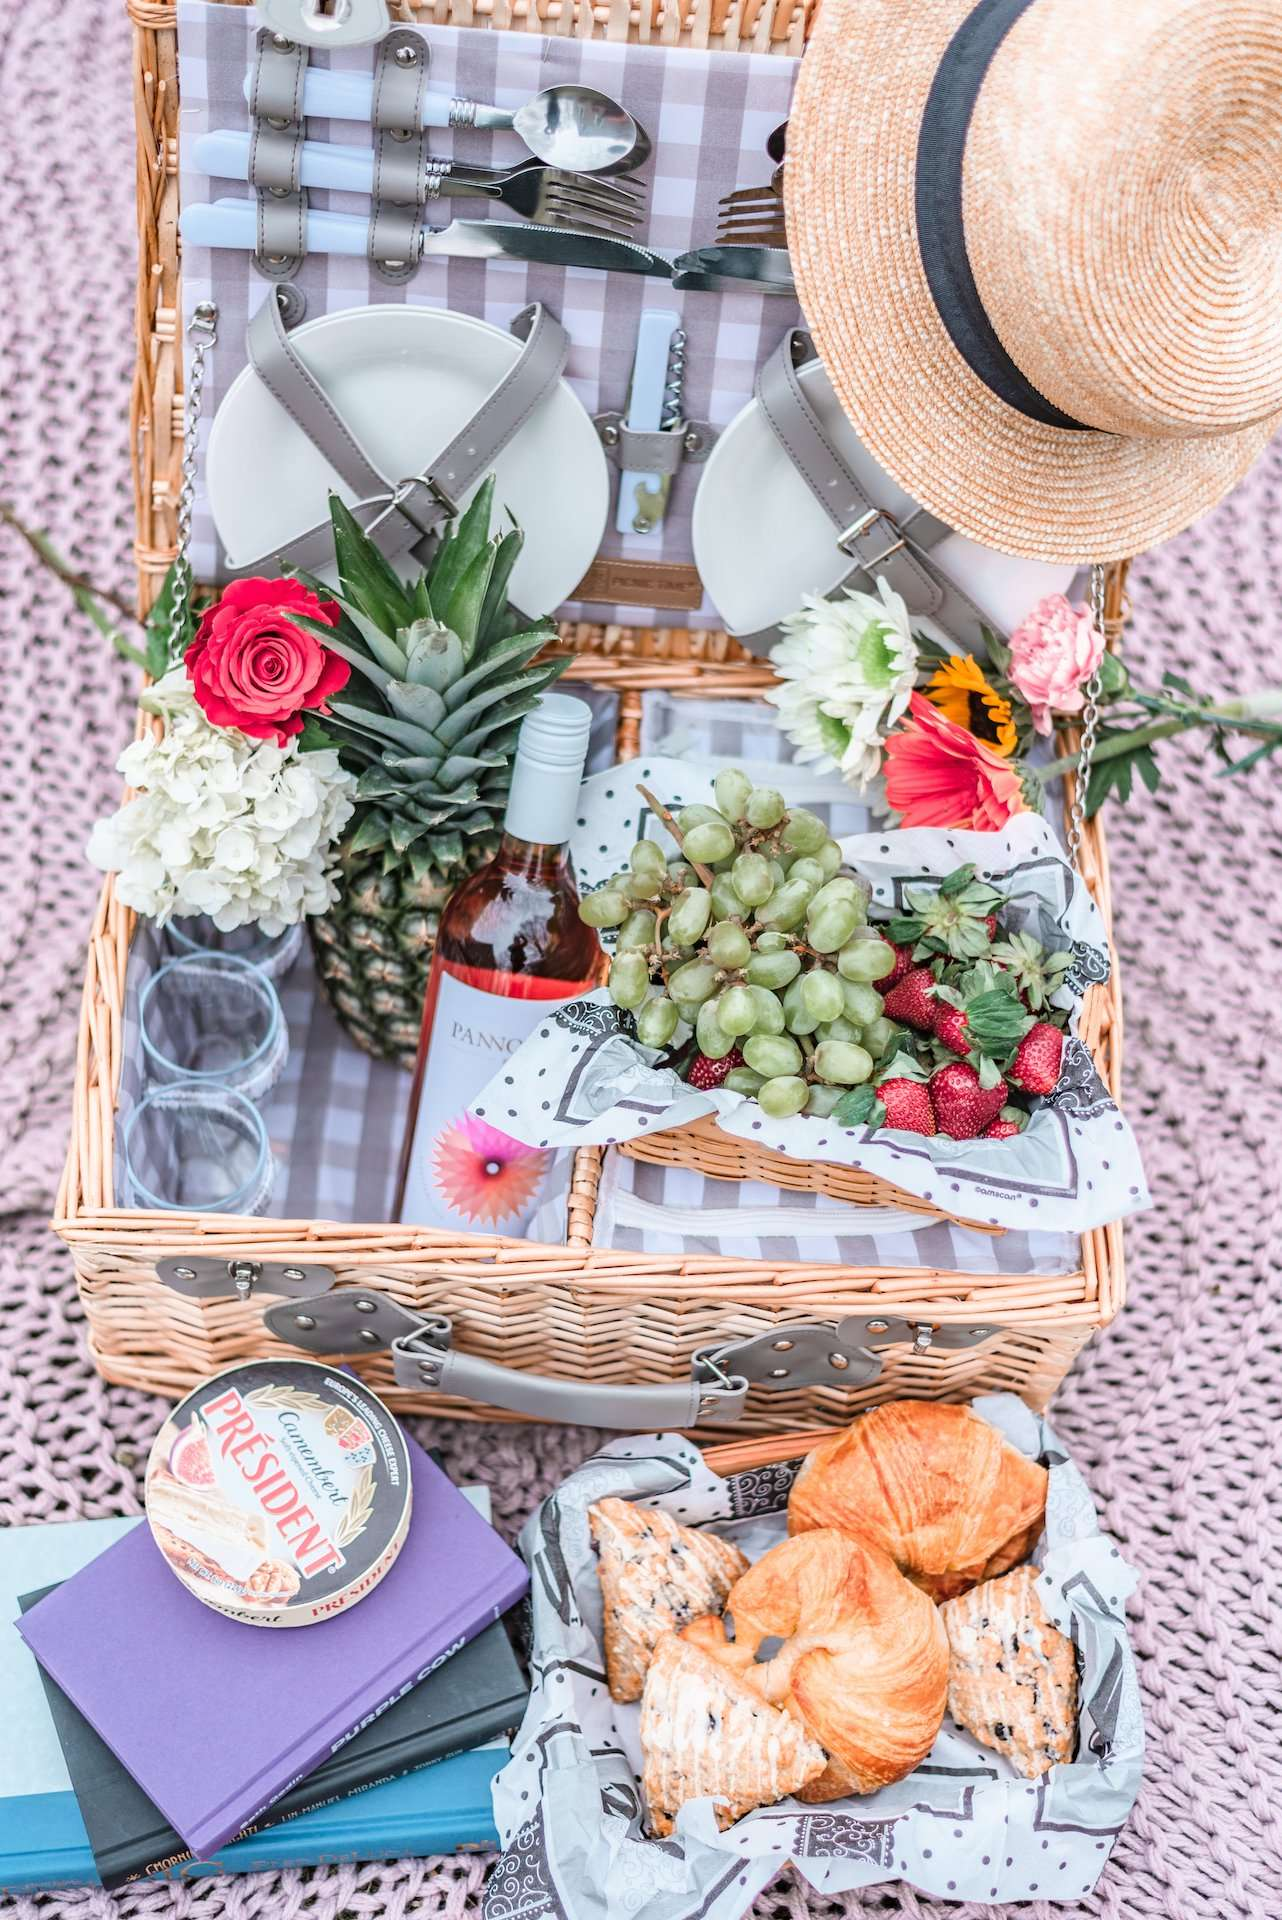 picnic basket with fruit, wine, and bread